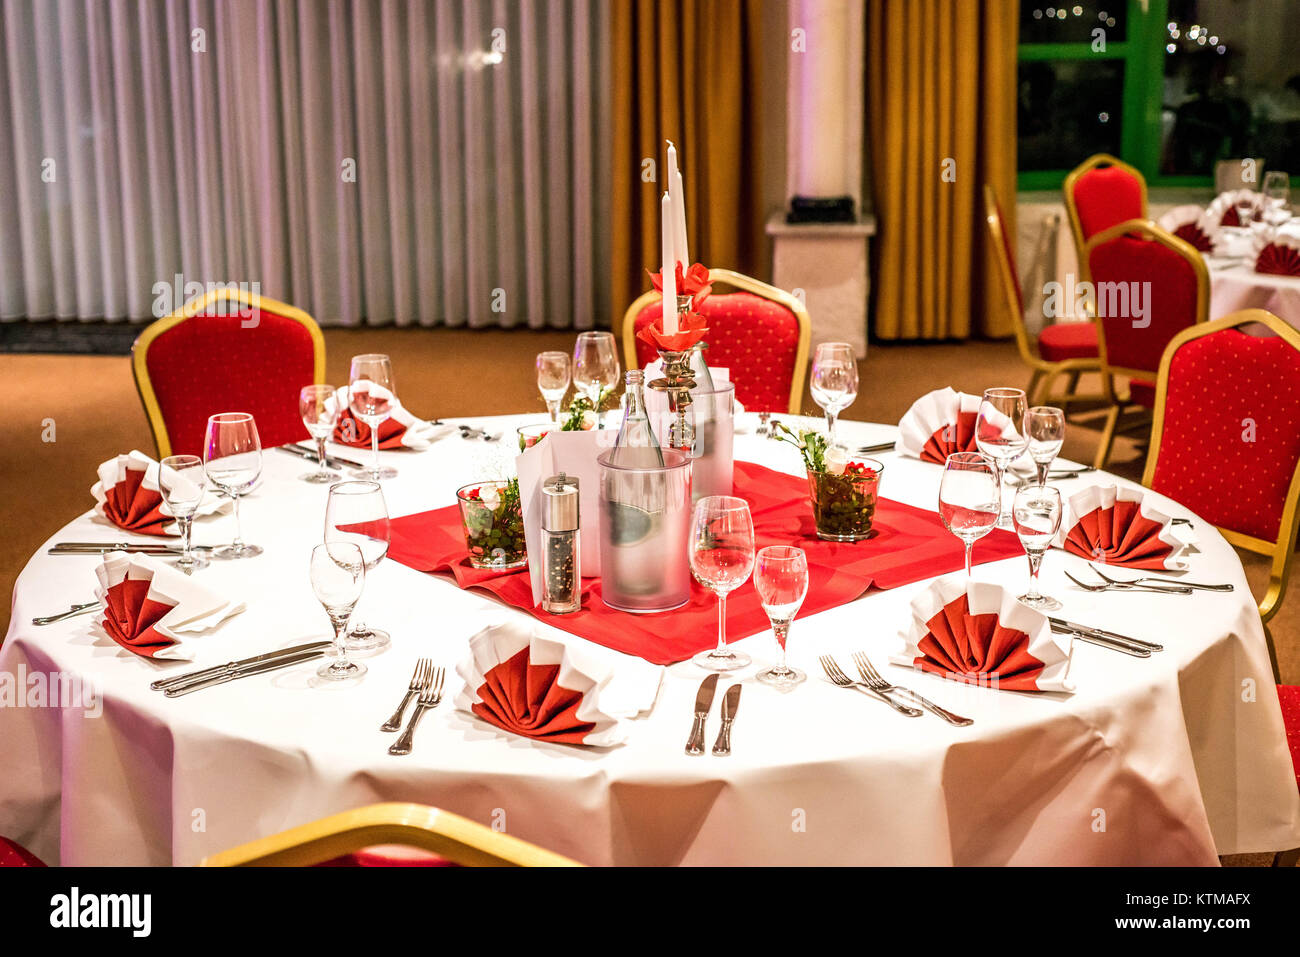 Banquet with red table setting Red tablecloth, white dishes, silver ...